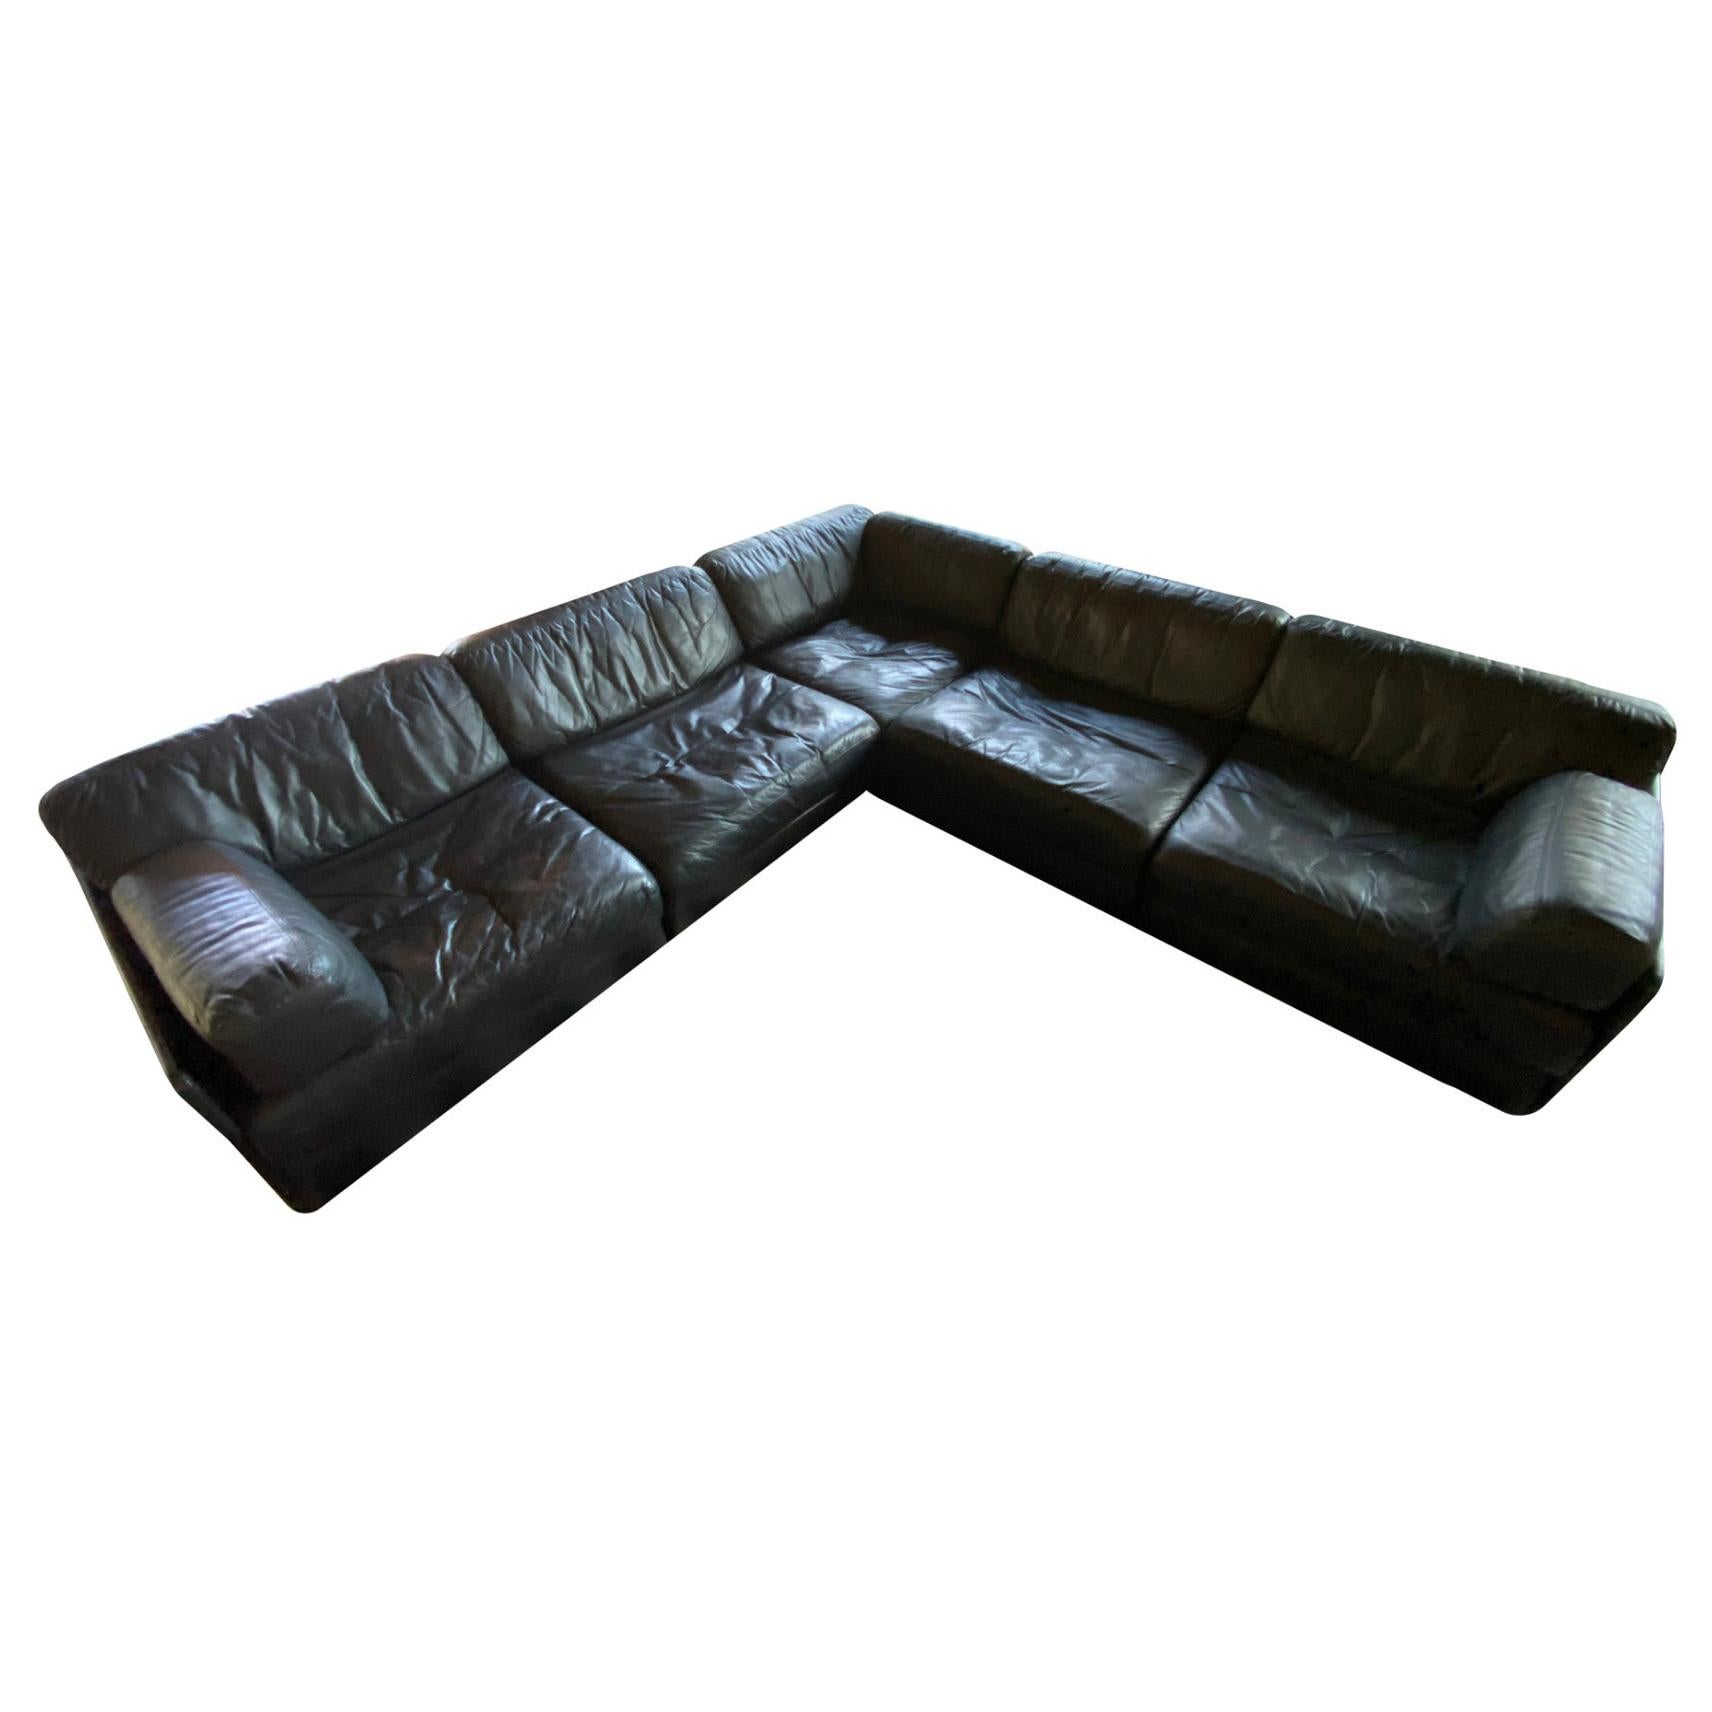 Modular De Sede Sectional Sofa DS-76, 1970s